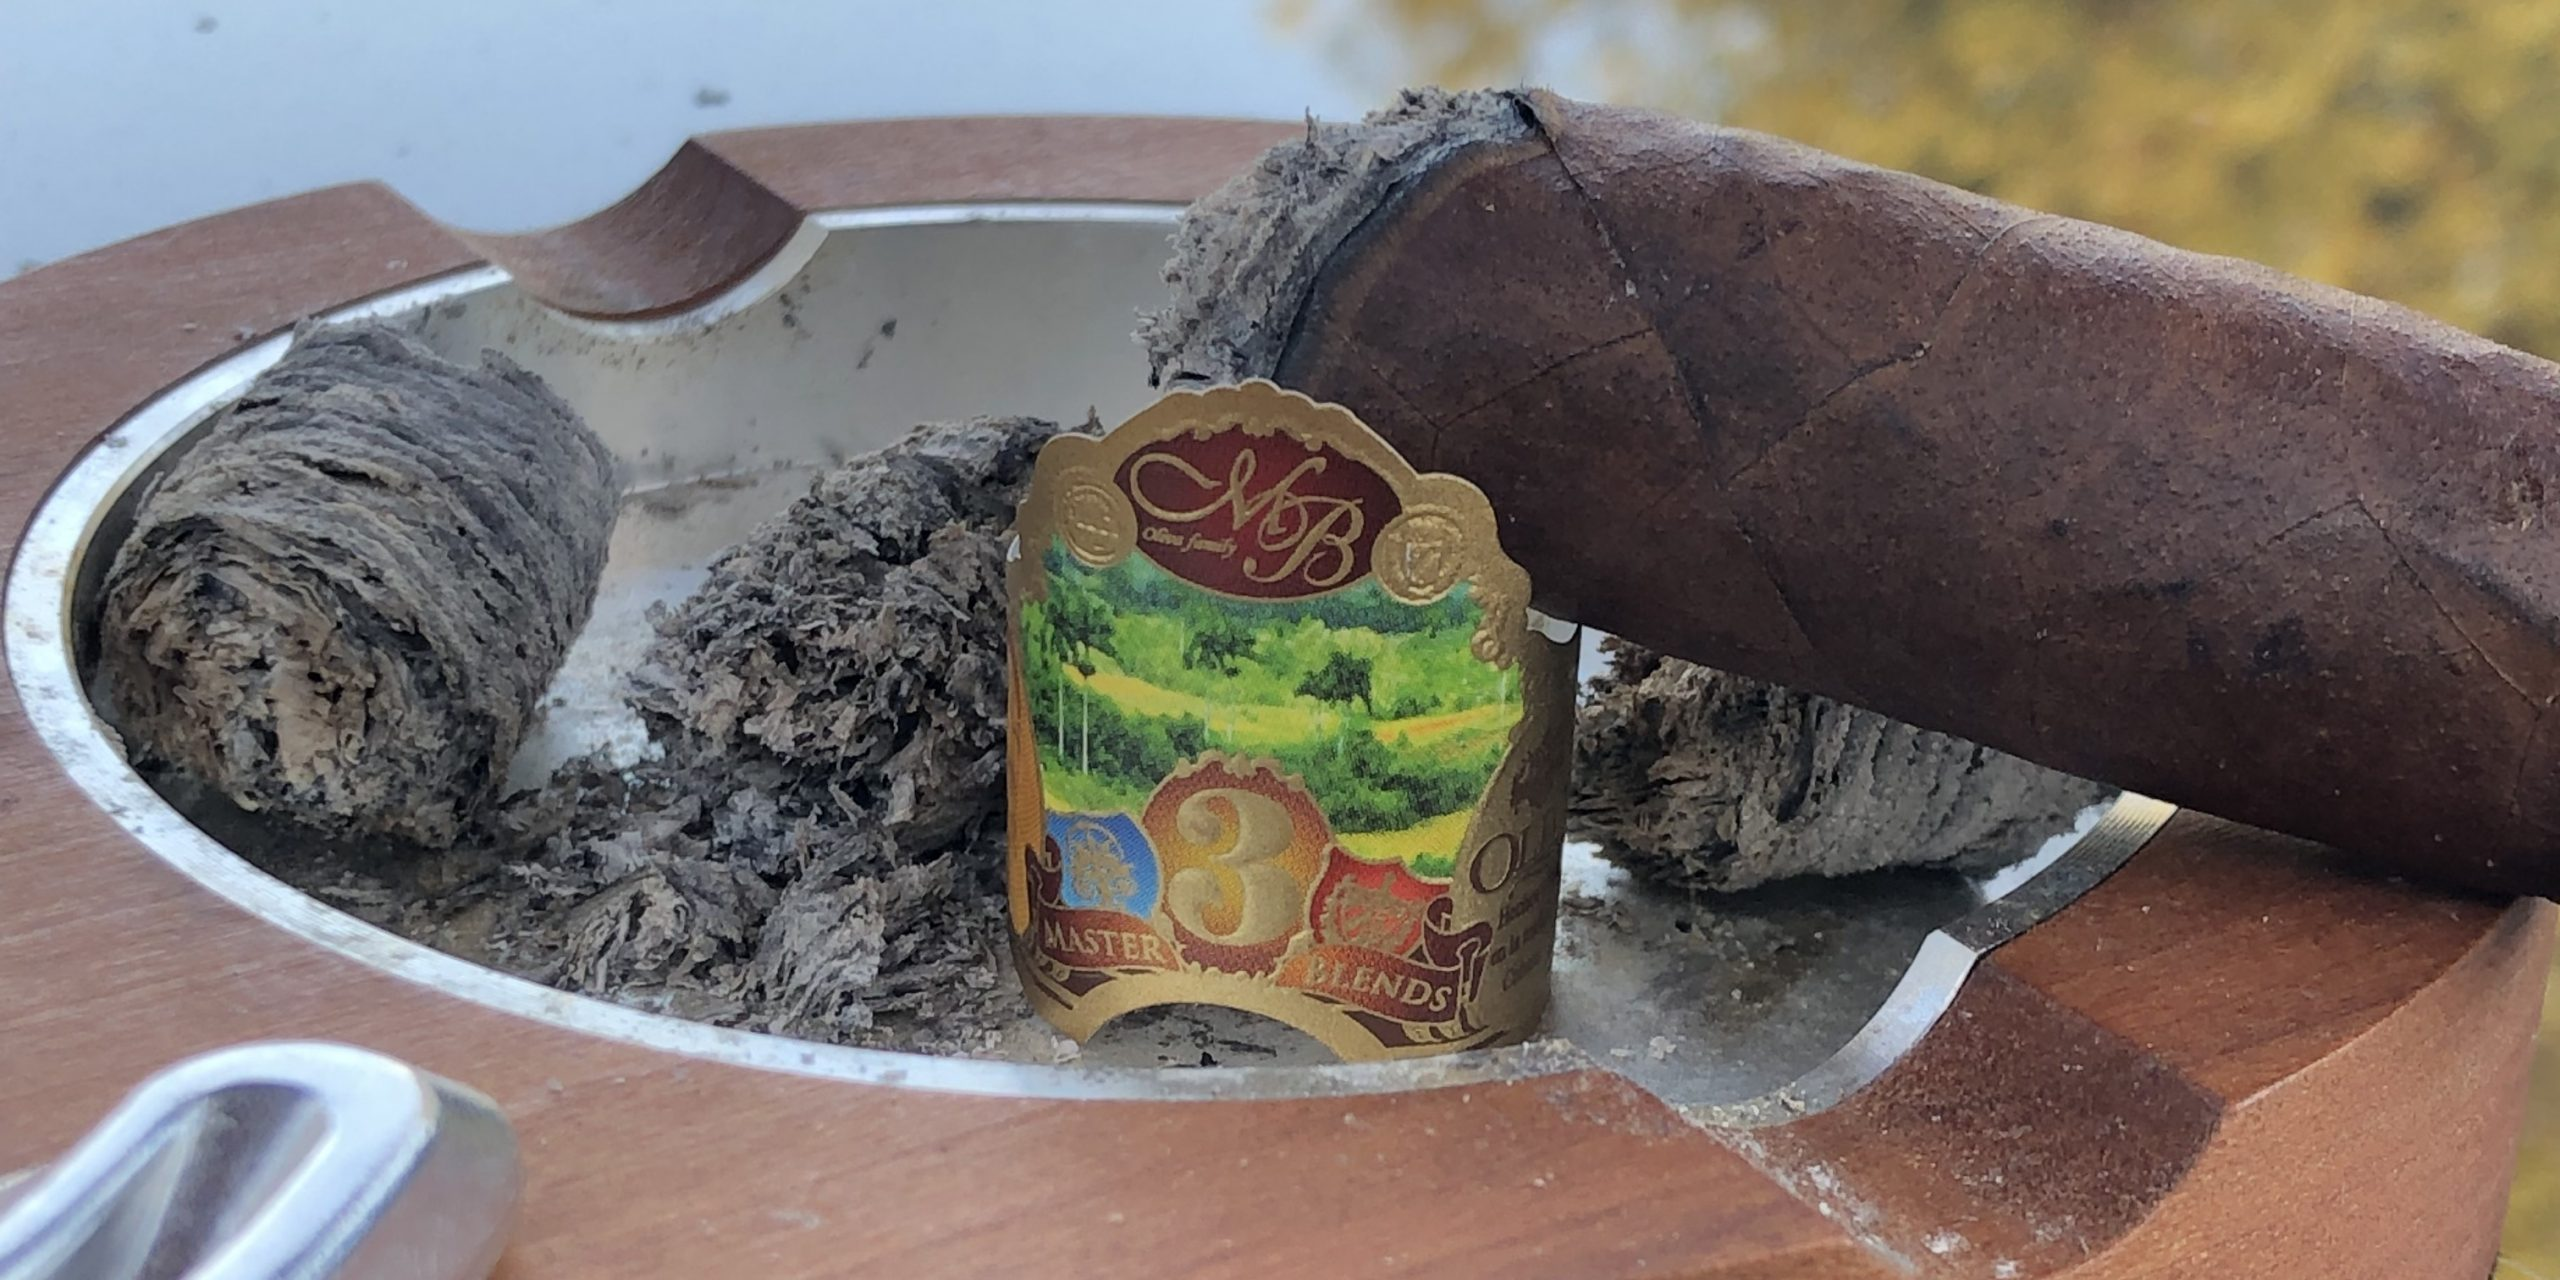 You are currently viewing Oliva Master Blends 3 Robusto